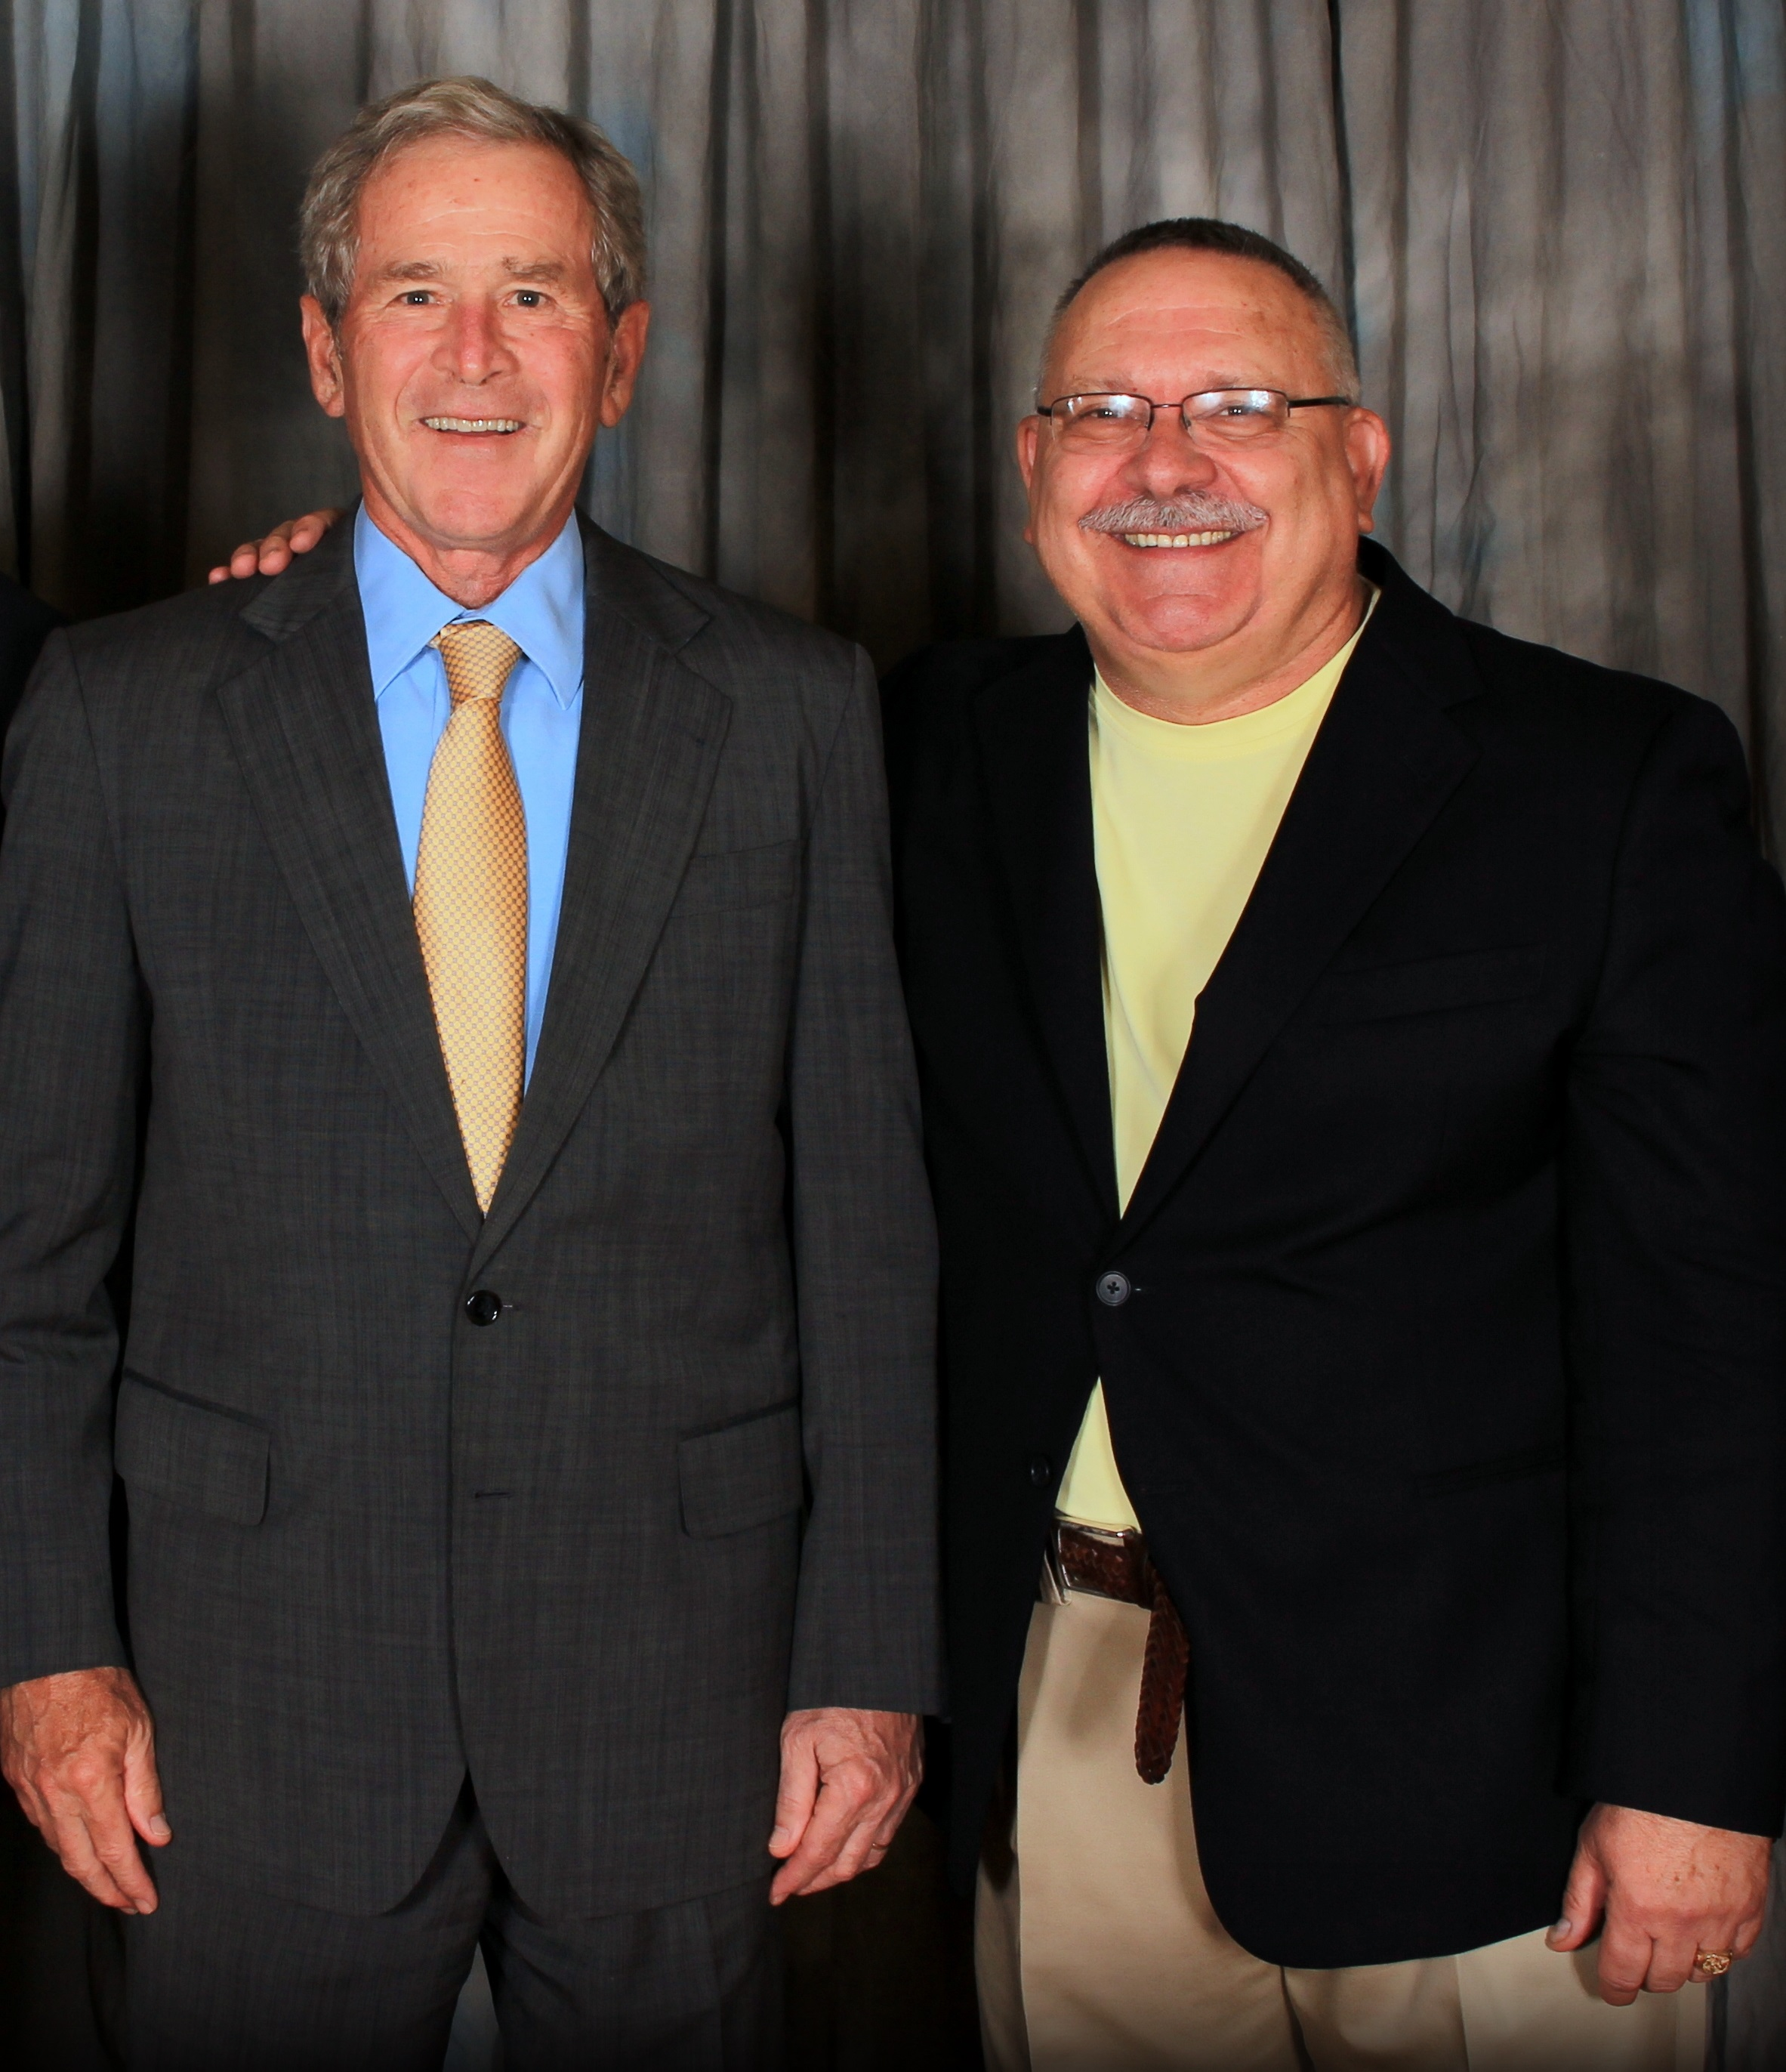 Mike & President George W Bush